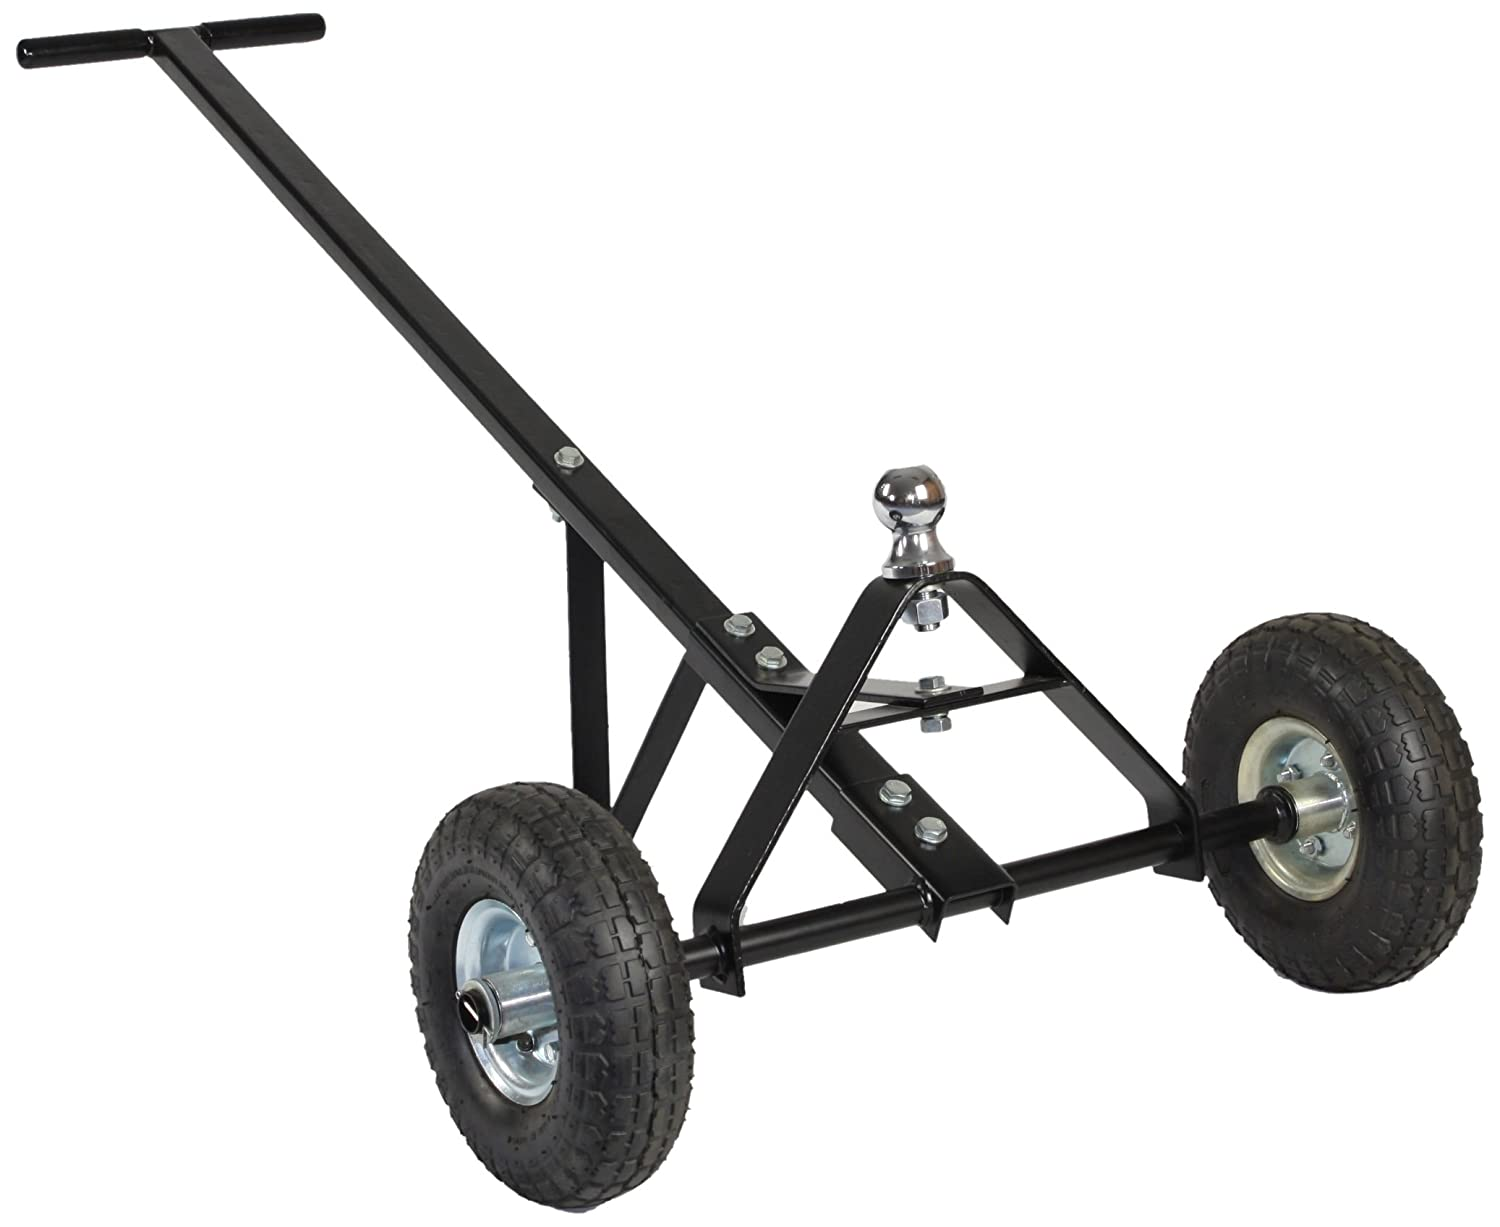 "MaxxHaul 70225 Trailer Dolly With 12"" Pneumatic Tires - 600 Lb. Maximum Capacity"